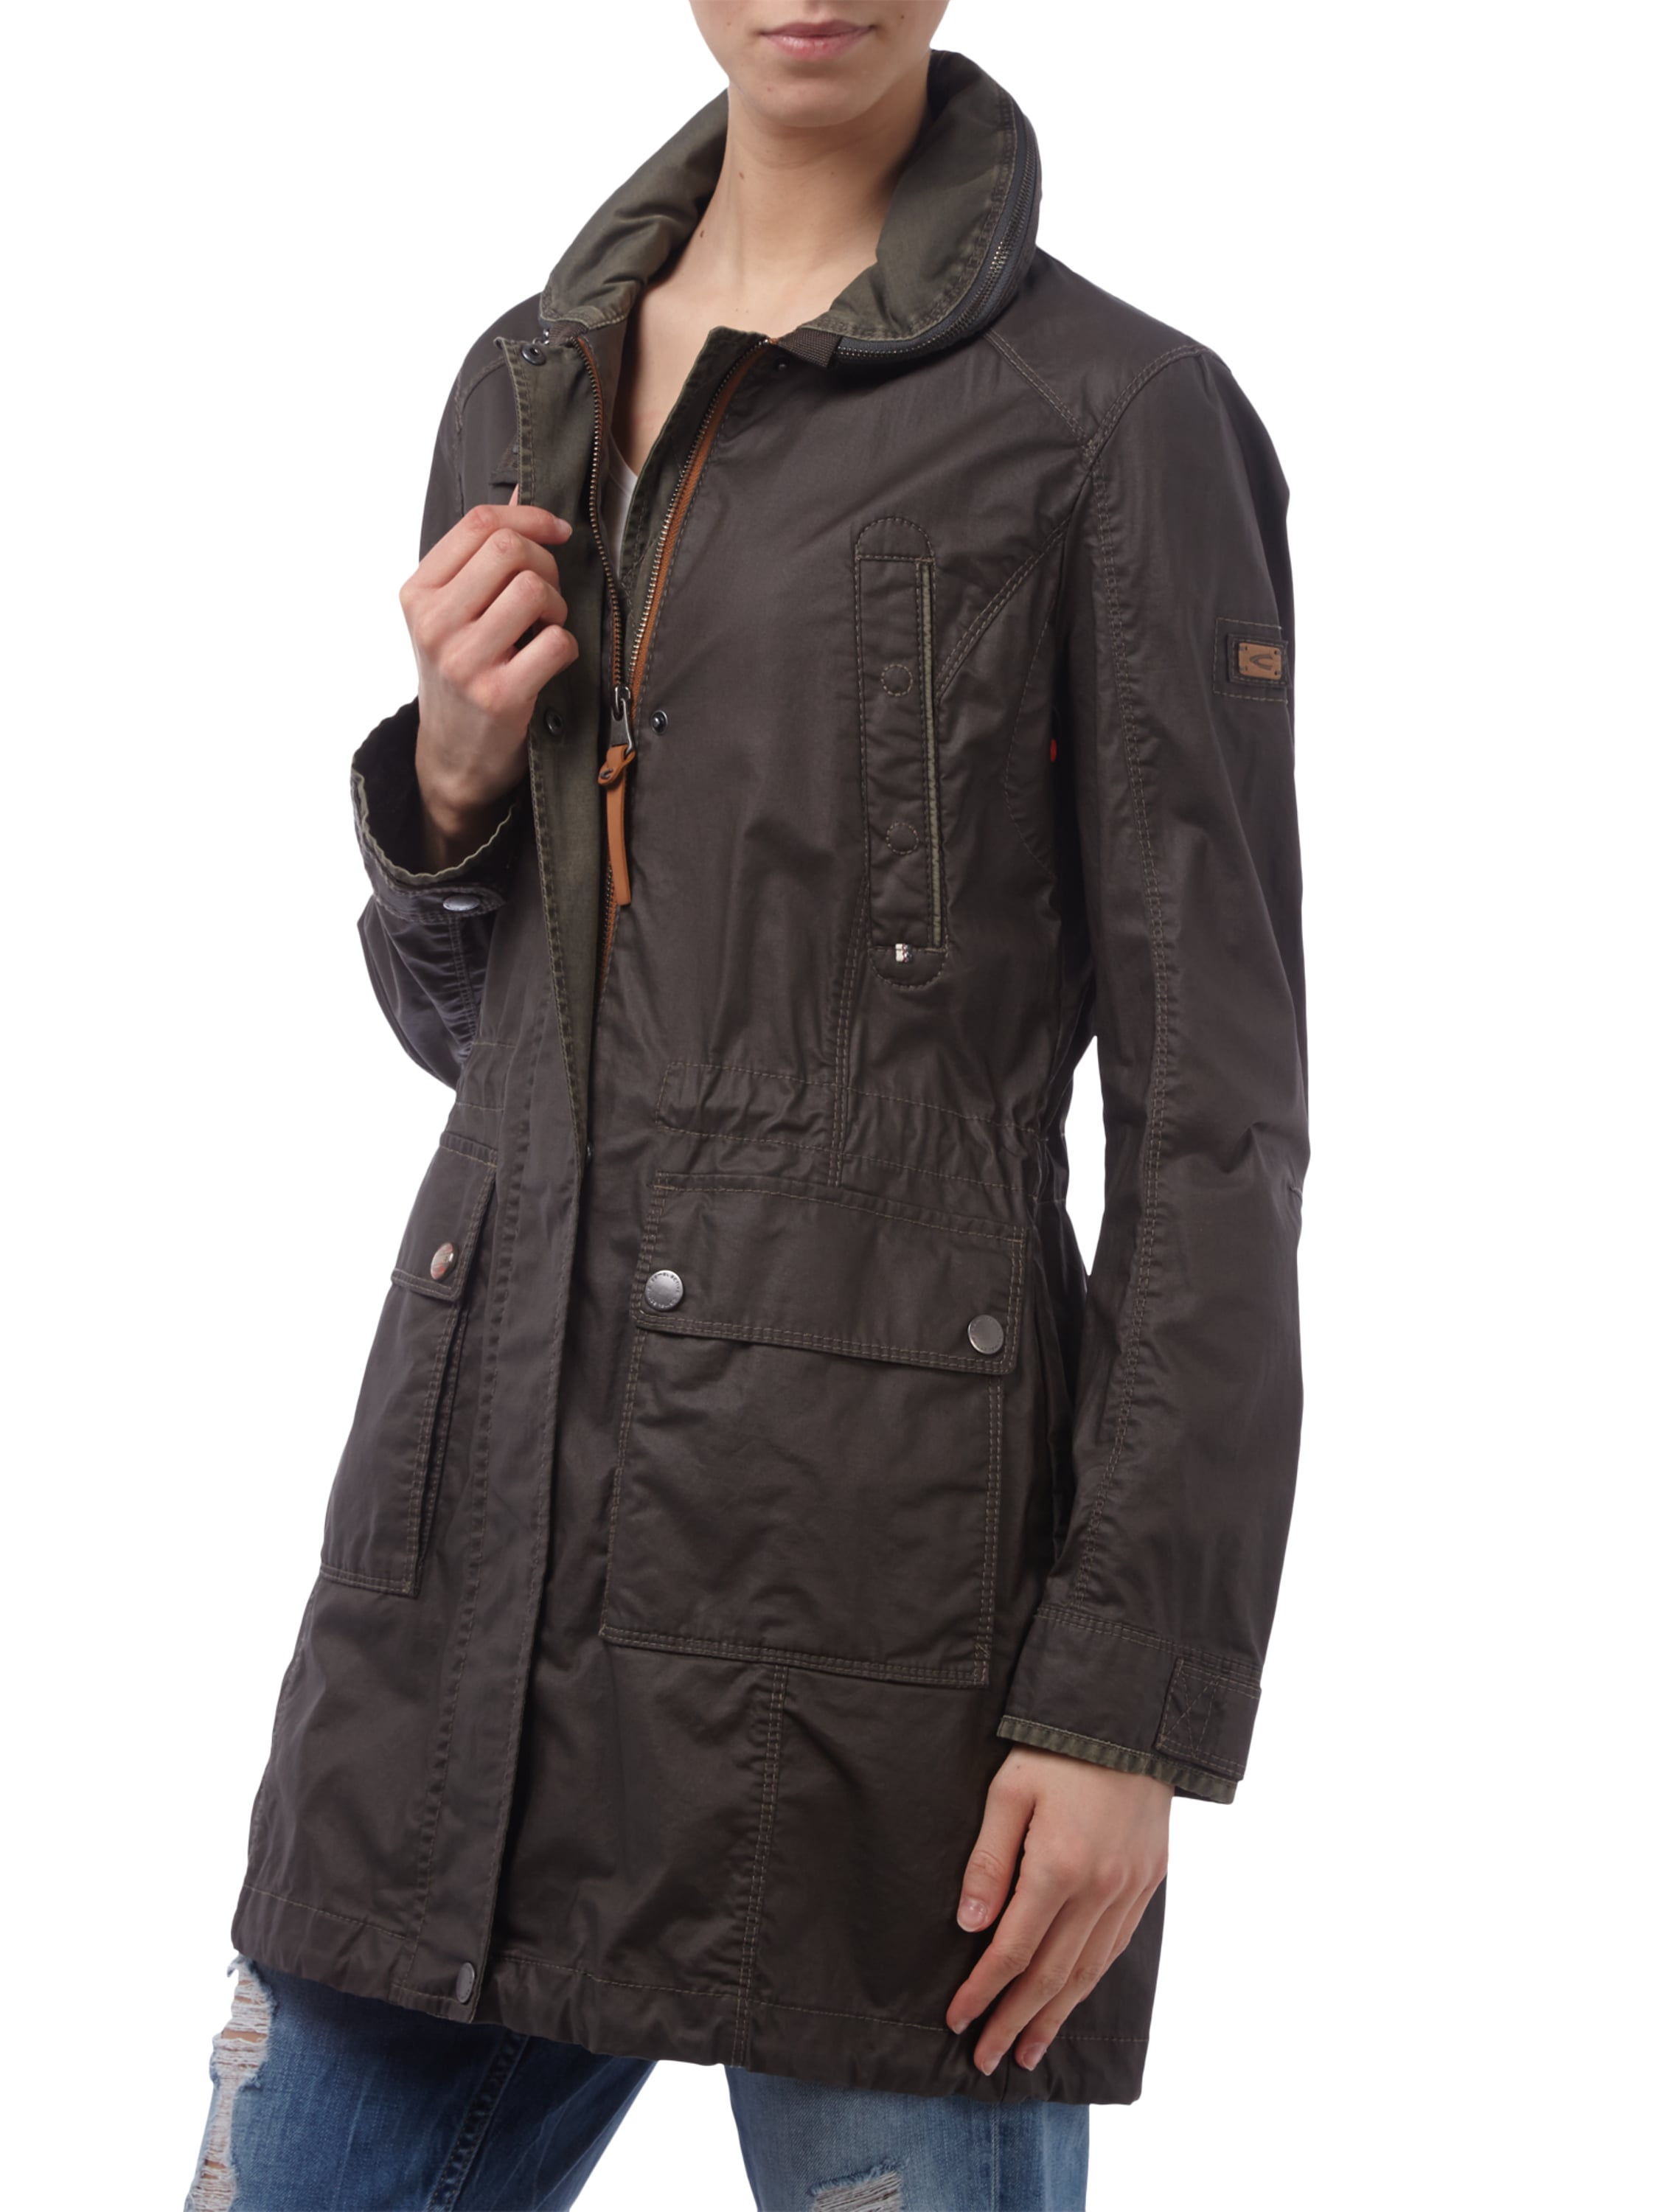 camel active parka mit herausnehmbarer kapuze wasserabweisend in gr n online kaufen 9423253. Black Bedroom Furniture Sets. Home Design Ideas